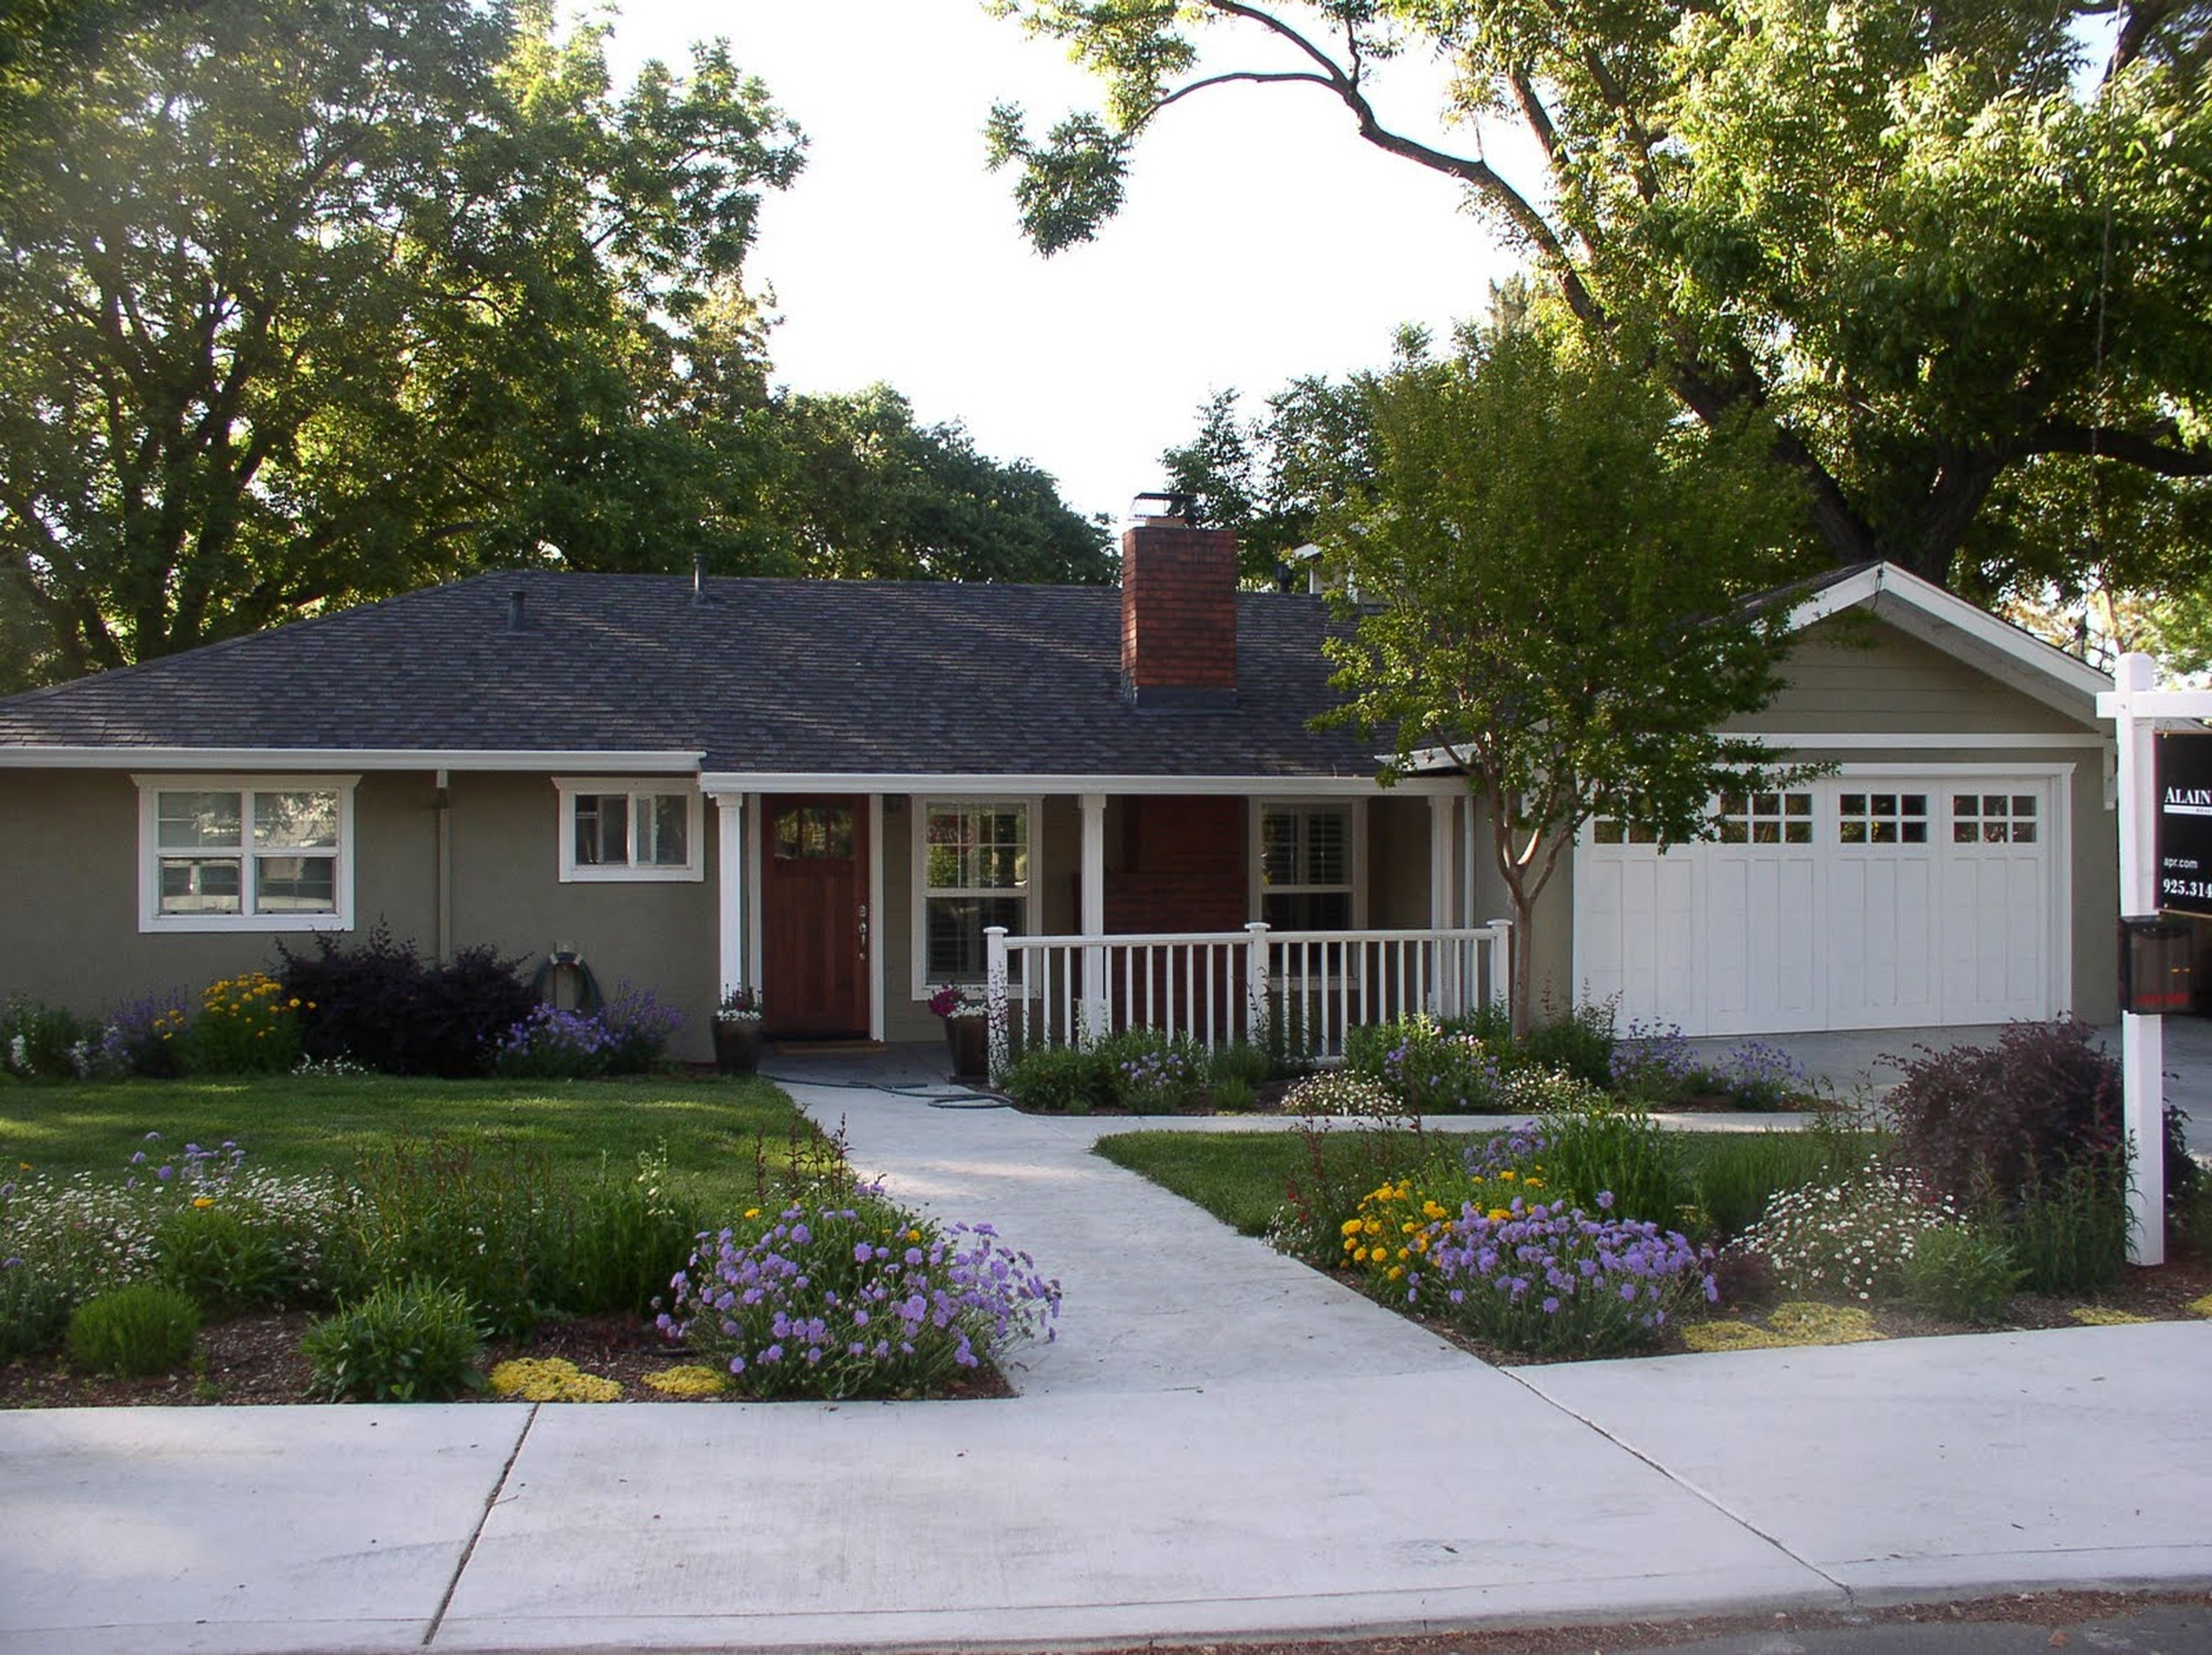 Landscaping Ideas For Ranch Style Homes In The Midwest ... on ranch house curb appeal landscaping, ranch landscaping ideas, ranch house landscaping designs,